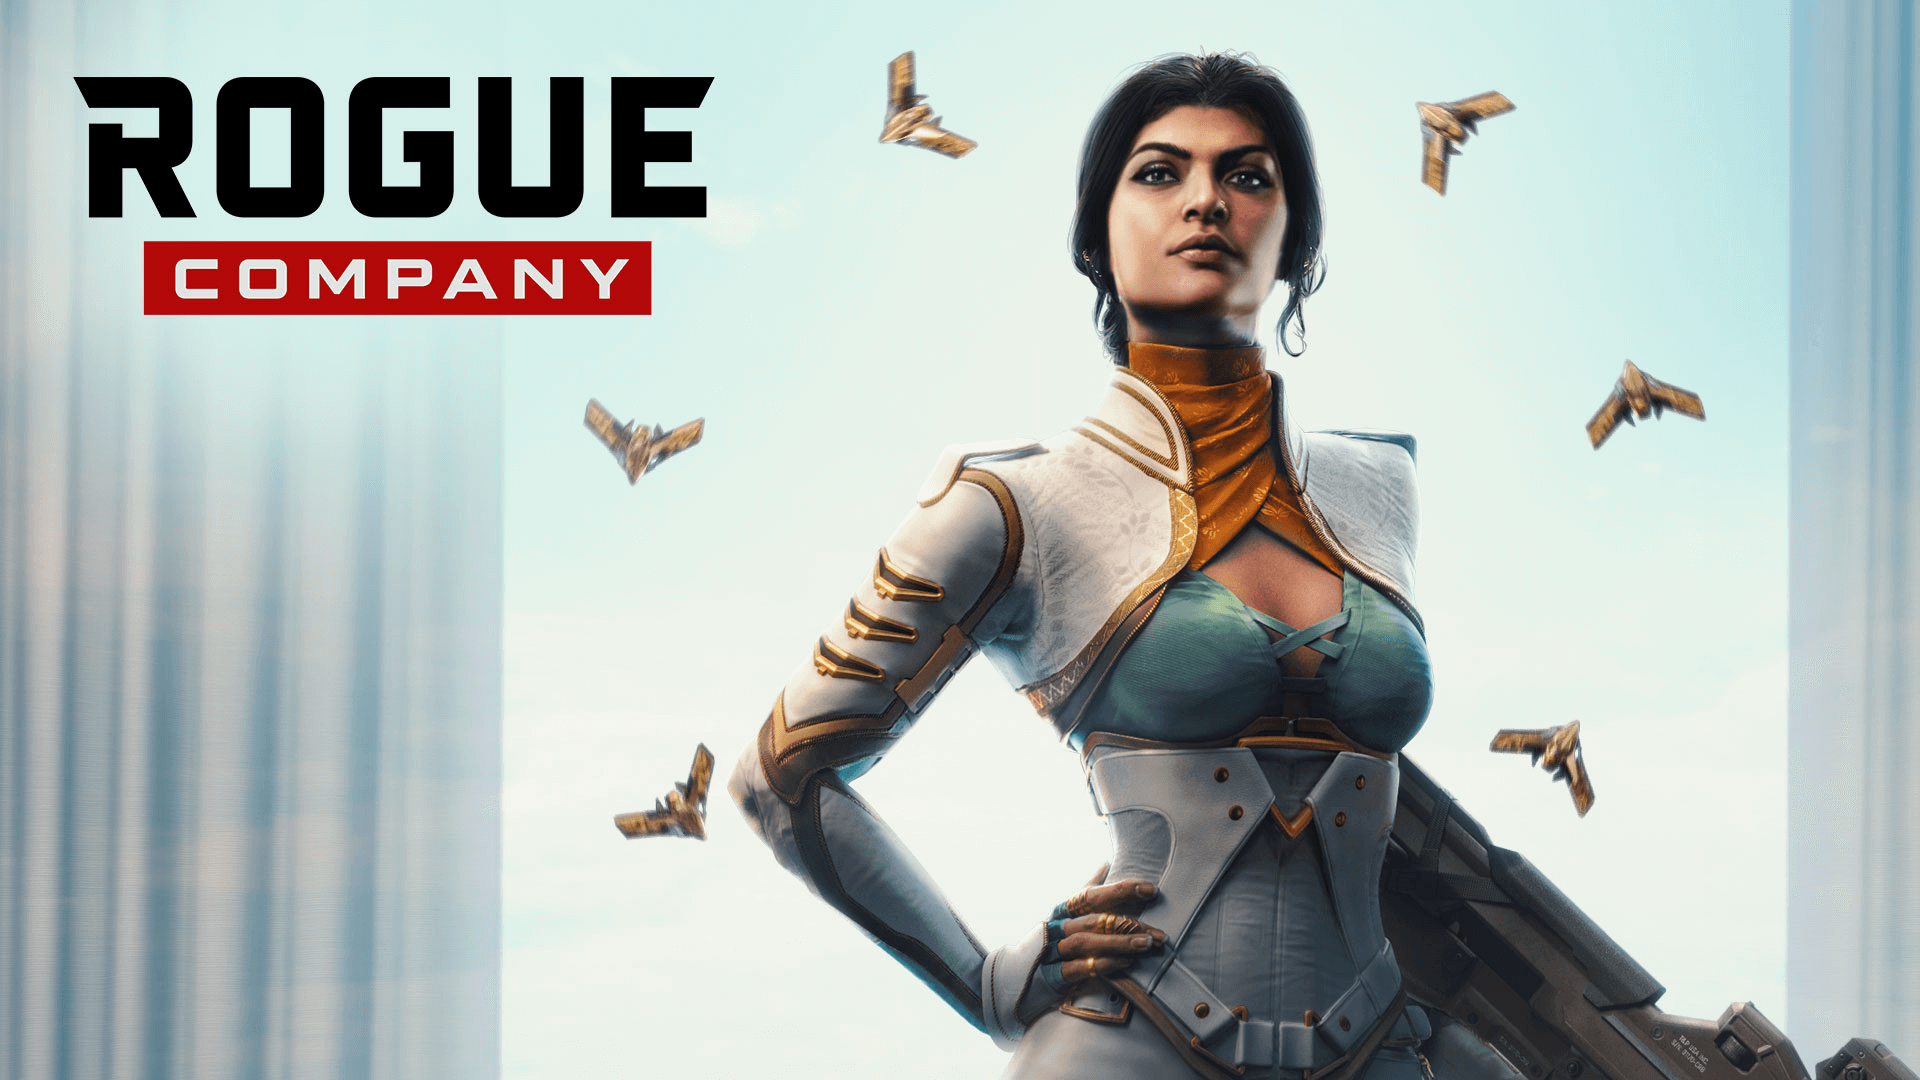 Rogue Company USE THIS ONE